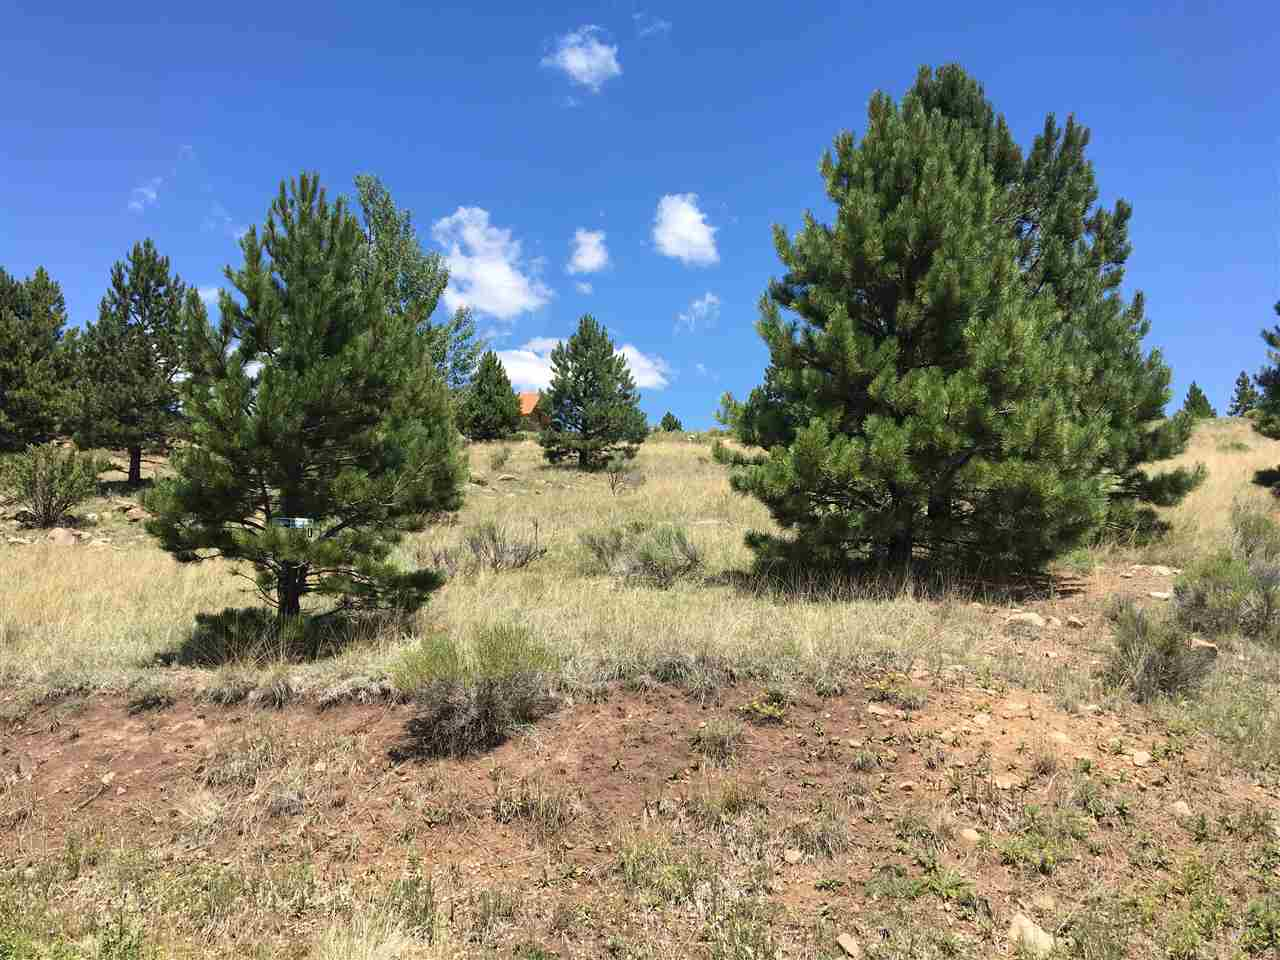 Lot very near the AFR Golf Course and Country Club! Walk to Olympic Park. Short drive to the ski lifts! PID is paid off, improvements are in place! Great build site.